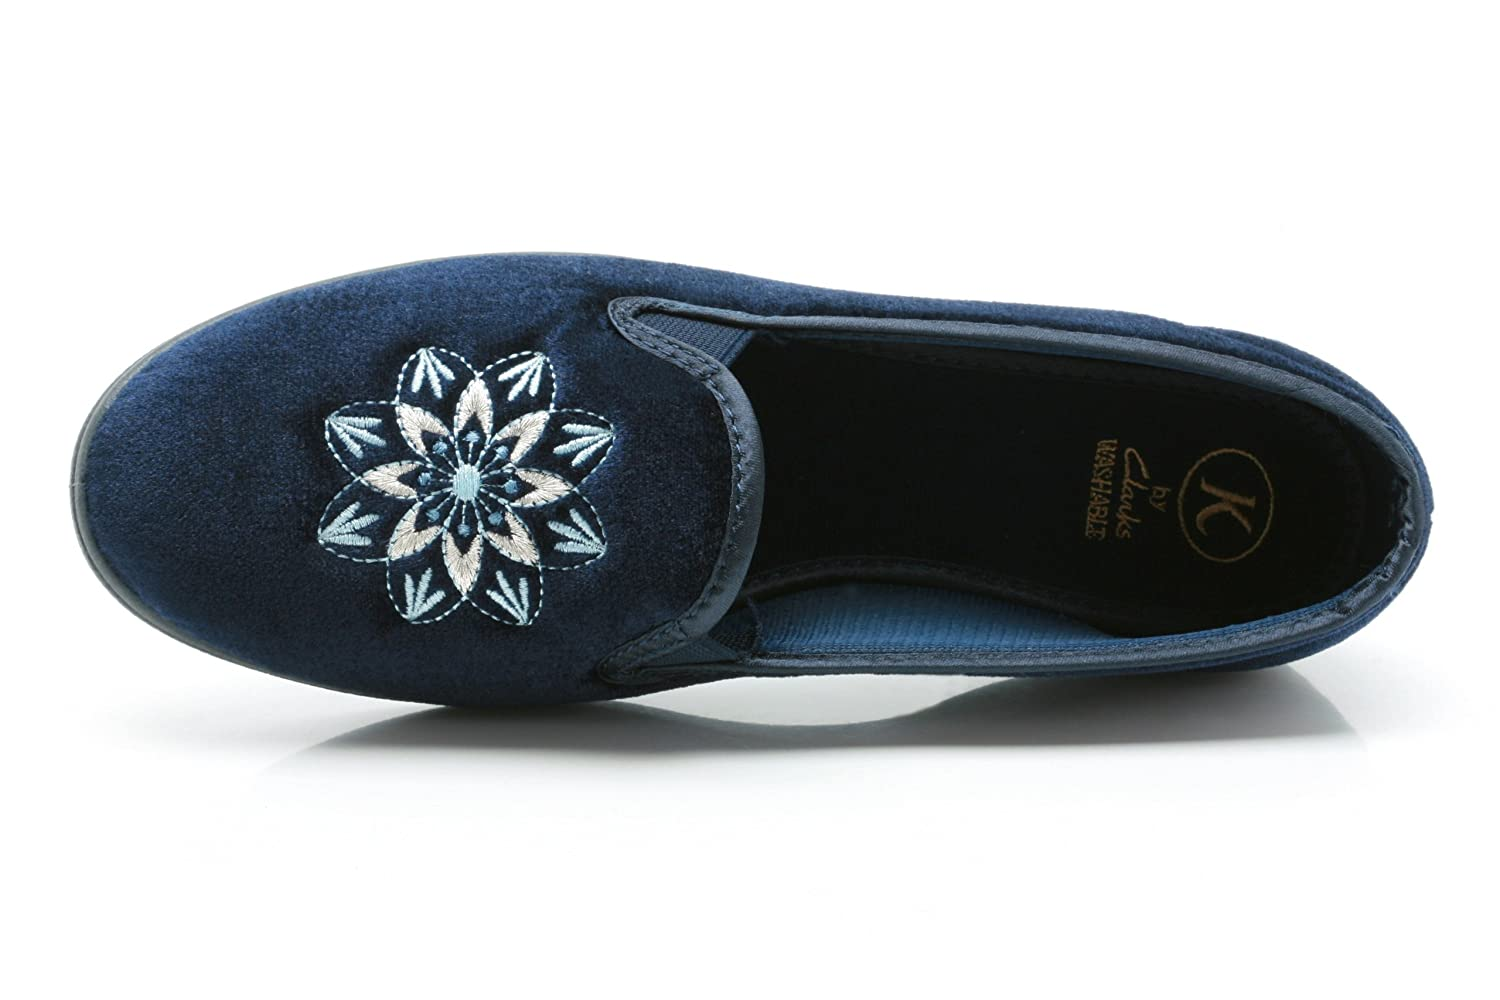 a4997e5d05e Ladies K s By Clarks Slippers Marsha Navy Size 8C  Amazon.co.uk  Shoes    Bags